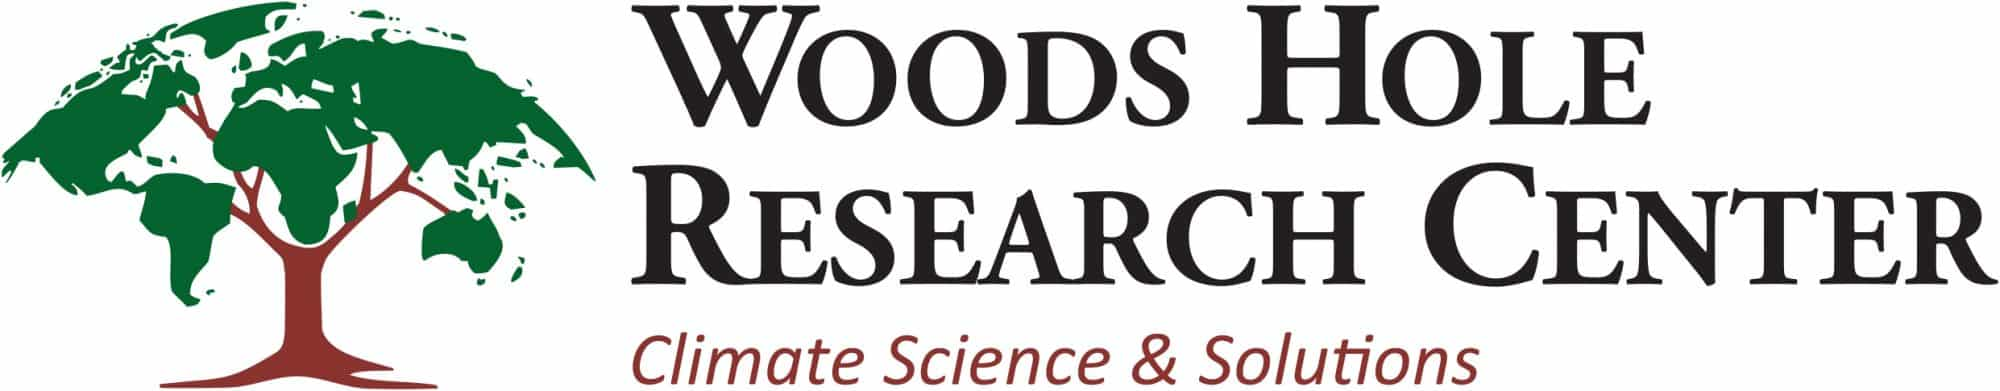 Woods Hole Research Center Logo